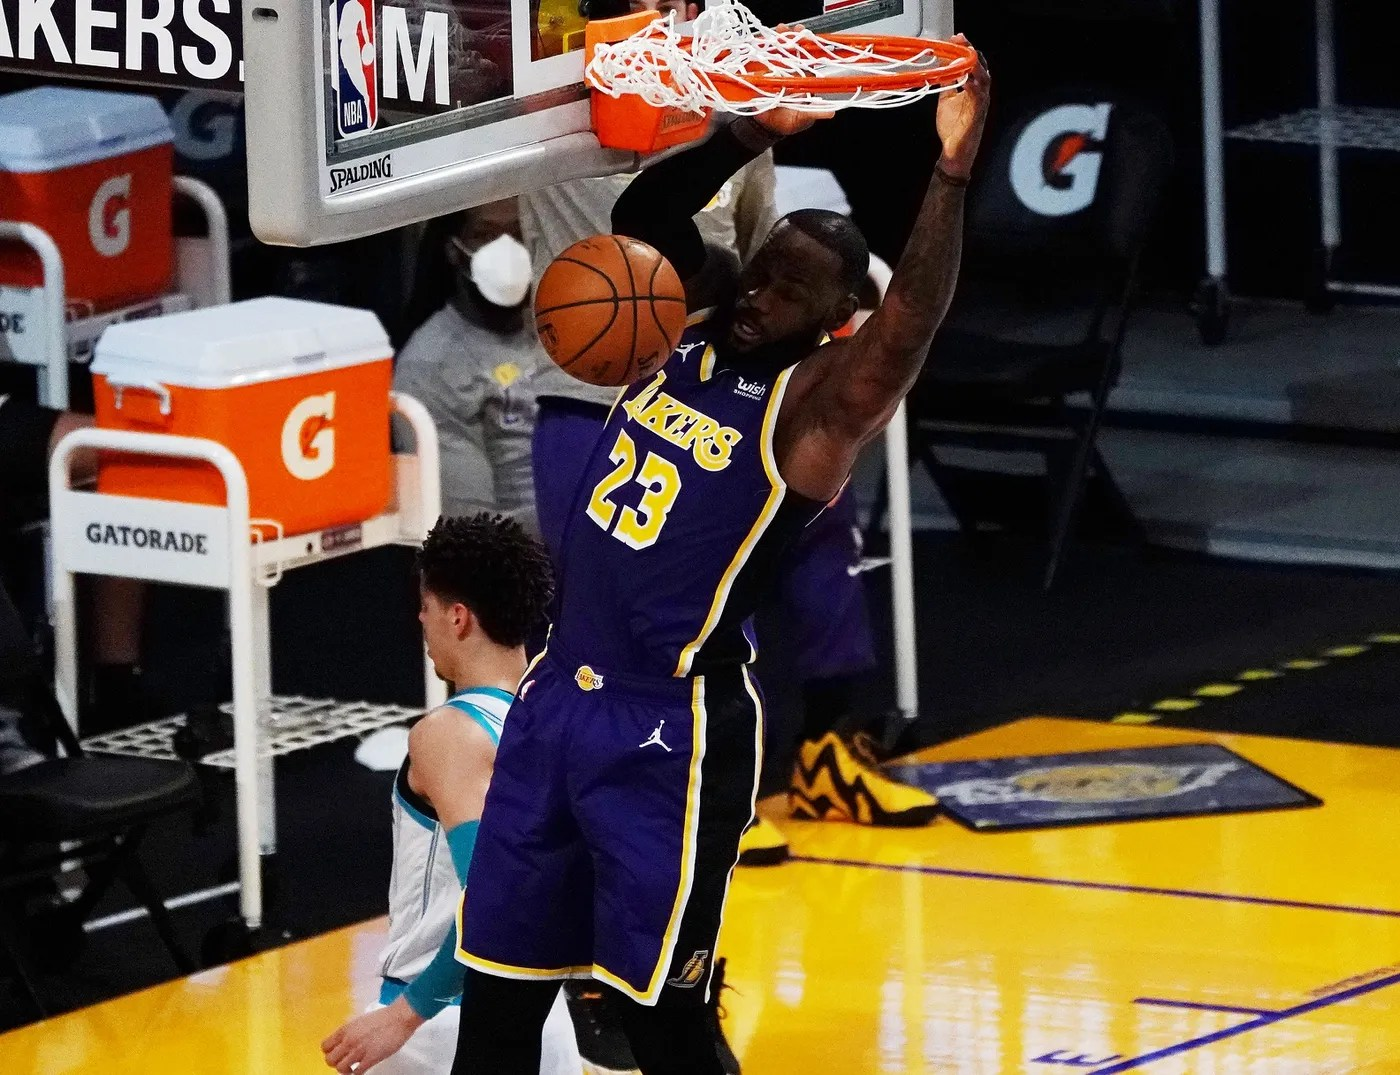 Mar 18, 2021; Los Angeles, California, USA; Los Angeles Lakers forward LeBron James (23) dunks for a basket against the Charlotte Hornets during the first half at Staples Center. Mandatory Credit: Gary A. Vasquez-USA TODAY Sports